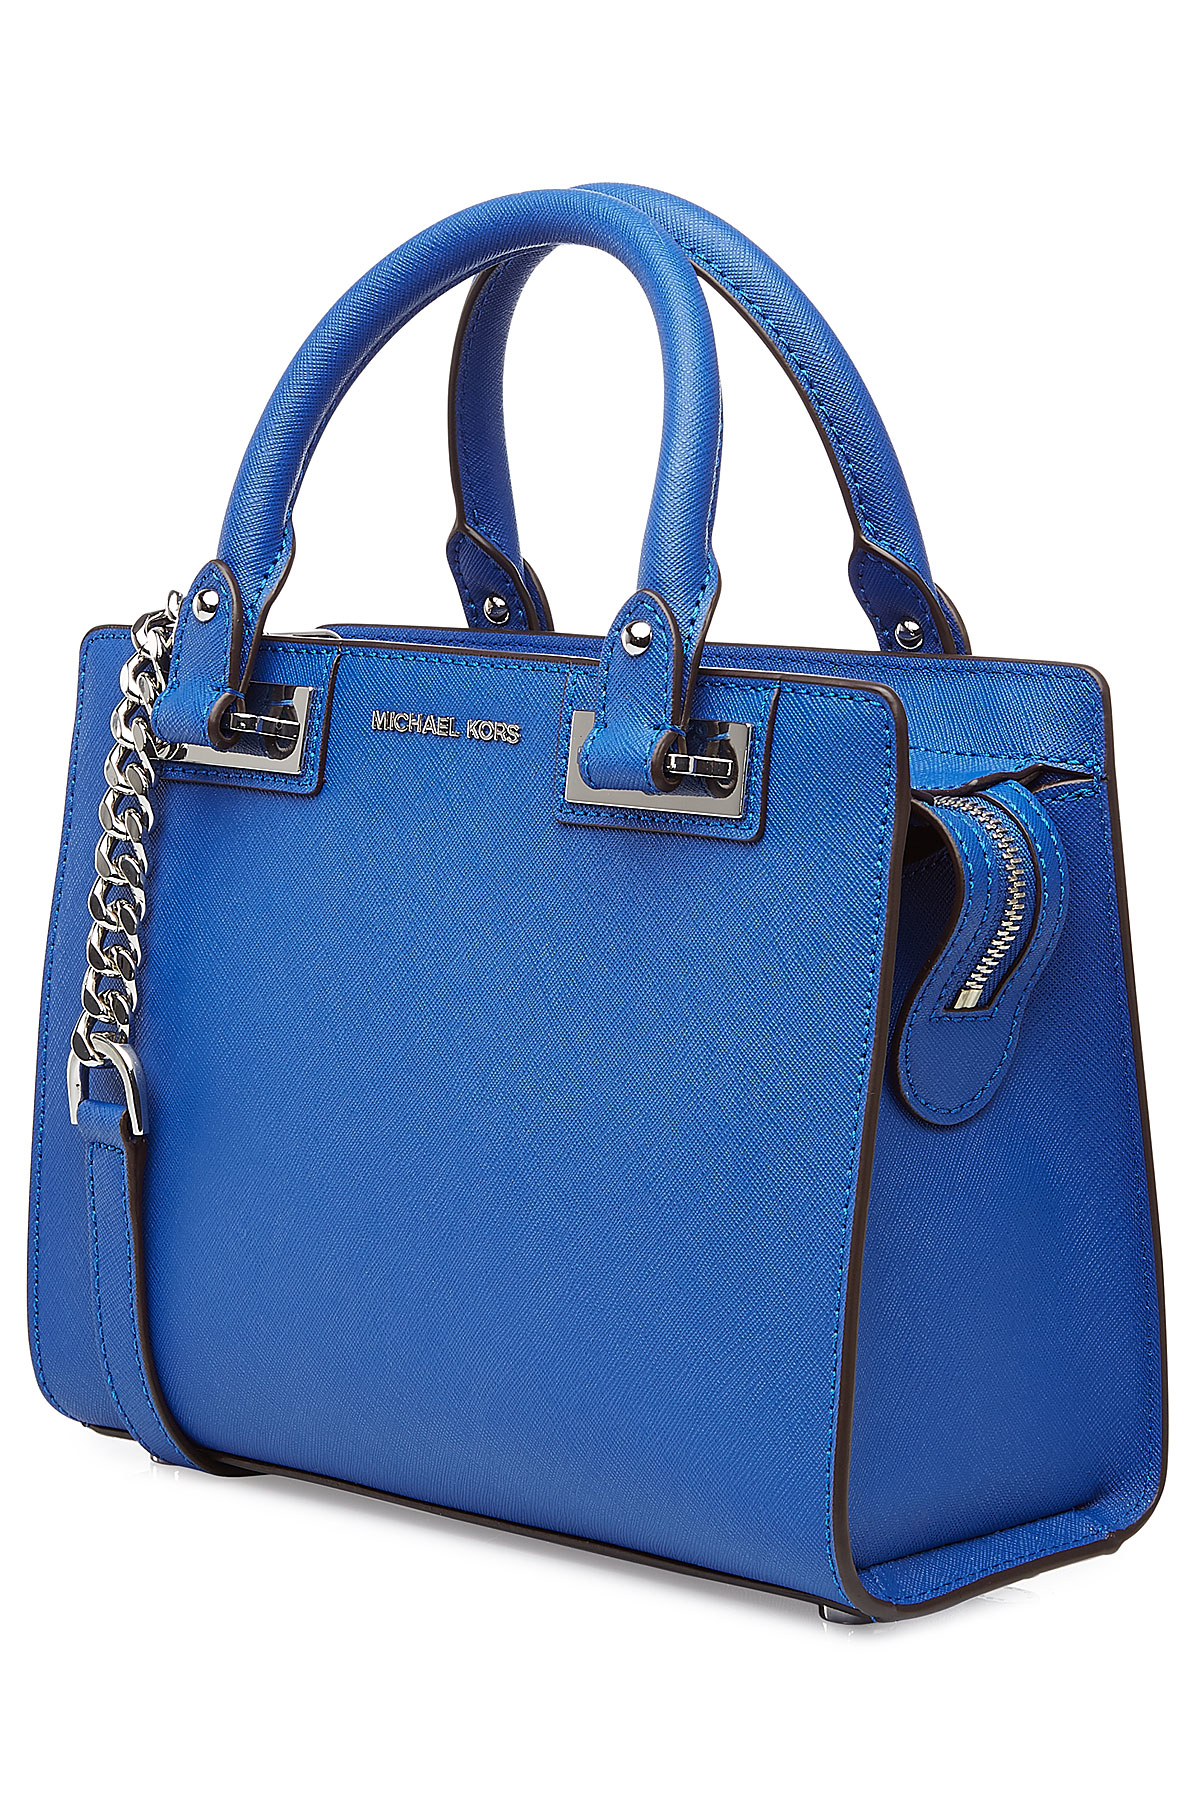 fe68d6812ea6df MICHAEL Michael Kors Quinn Small Leather Satchel - Blue in Blue - Lyst